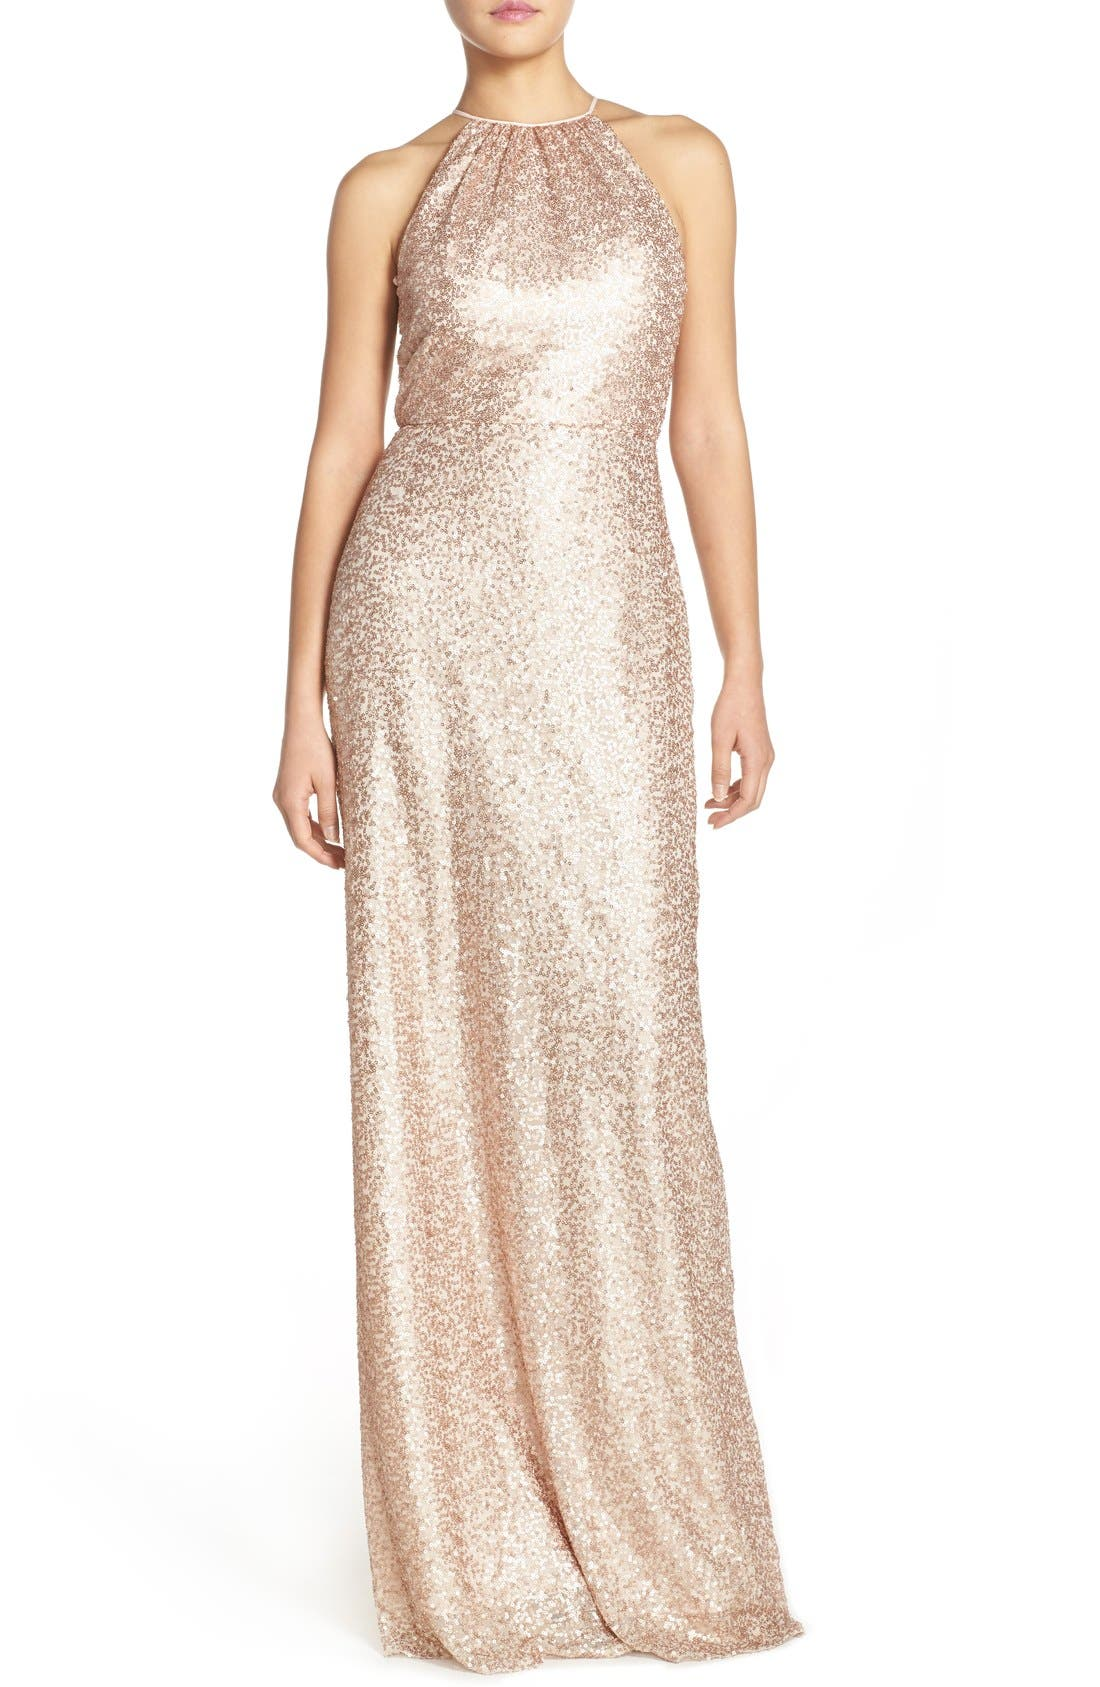 'Chandler' Sequin Tulle Halter Style Gown,                             Main thumbnail 5, color,